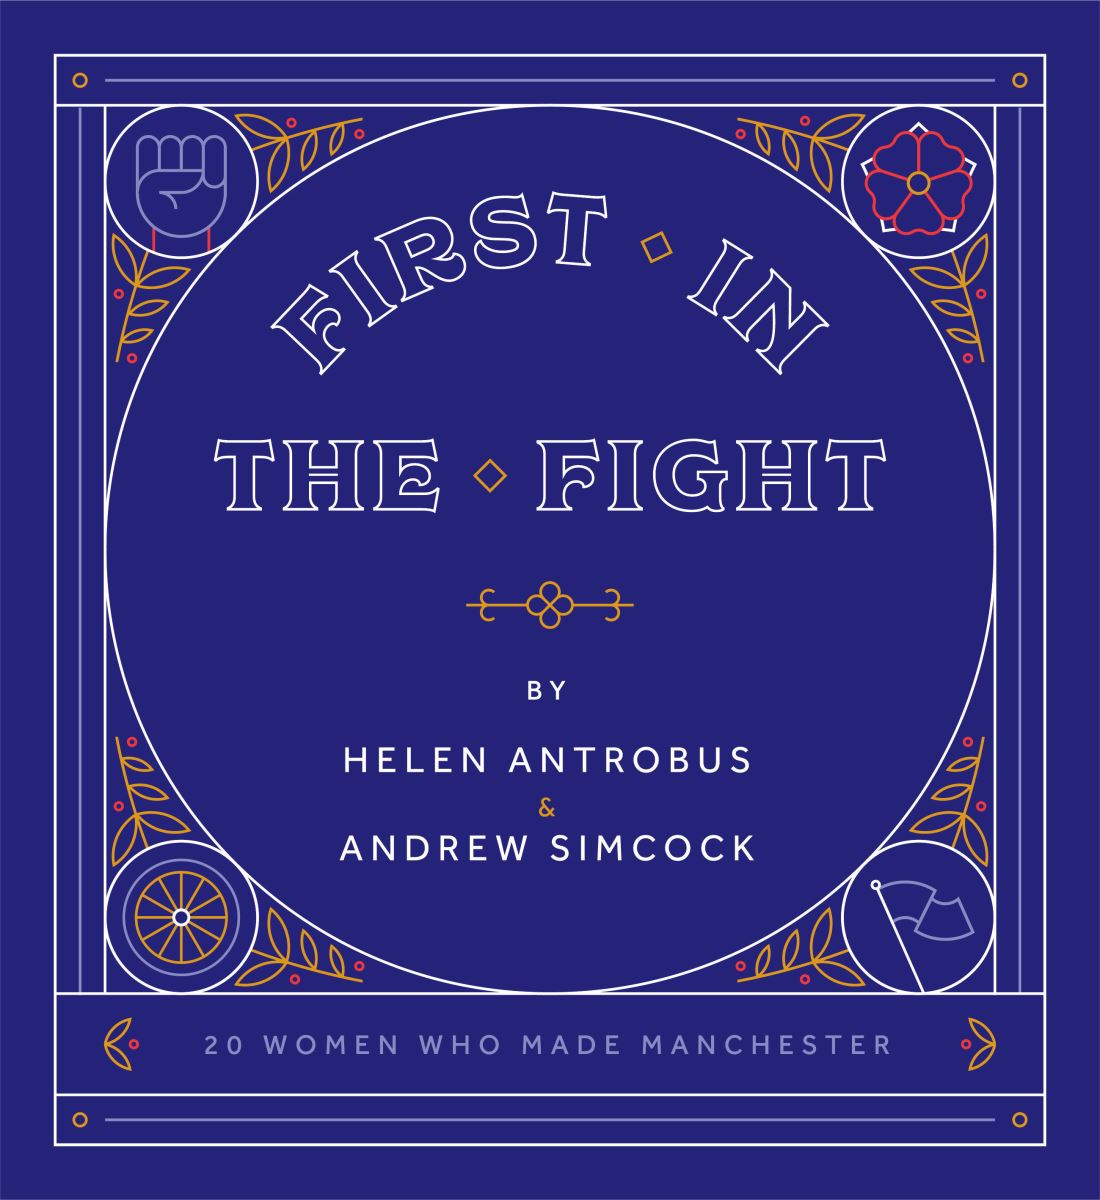 First in the Fight – find out more about a fascinating book celebrating the hidden histories of Manchester's hardworking and reforming women